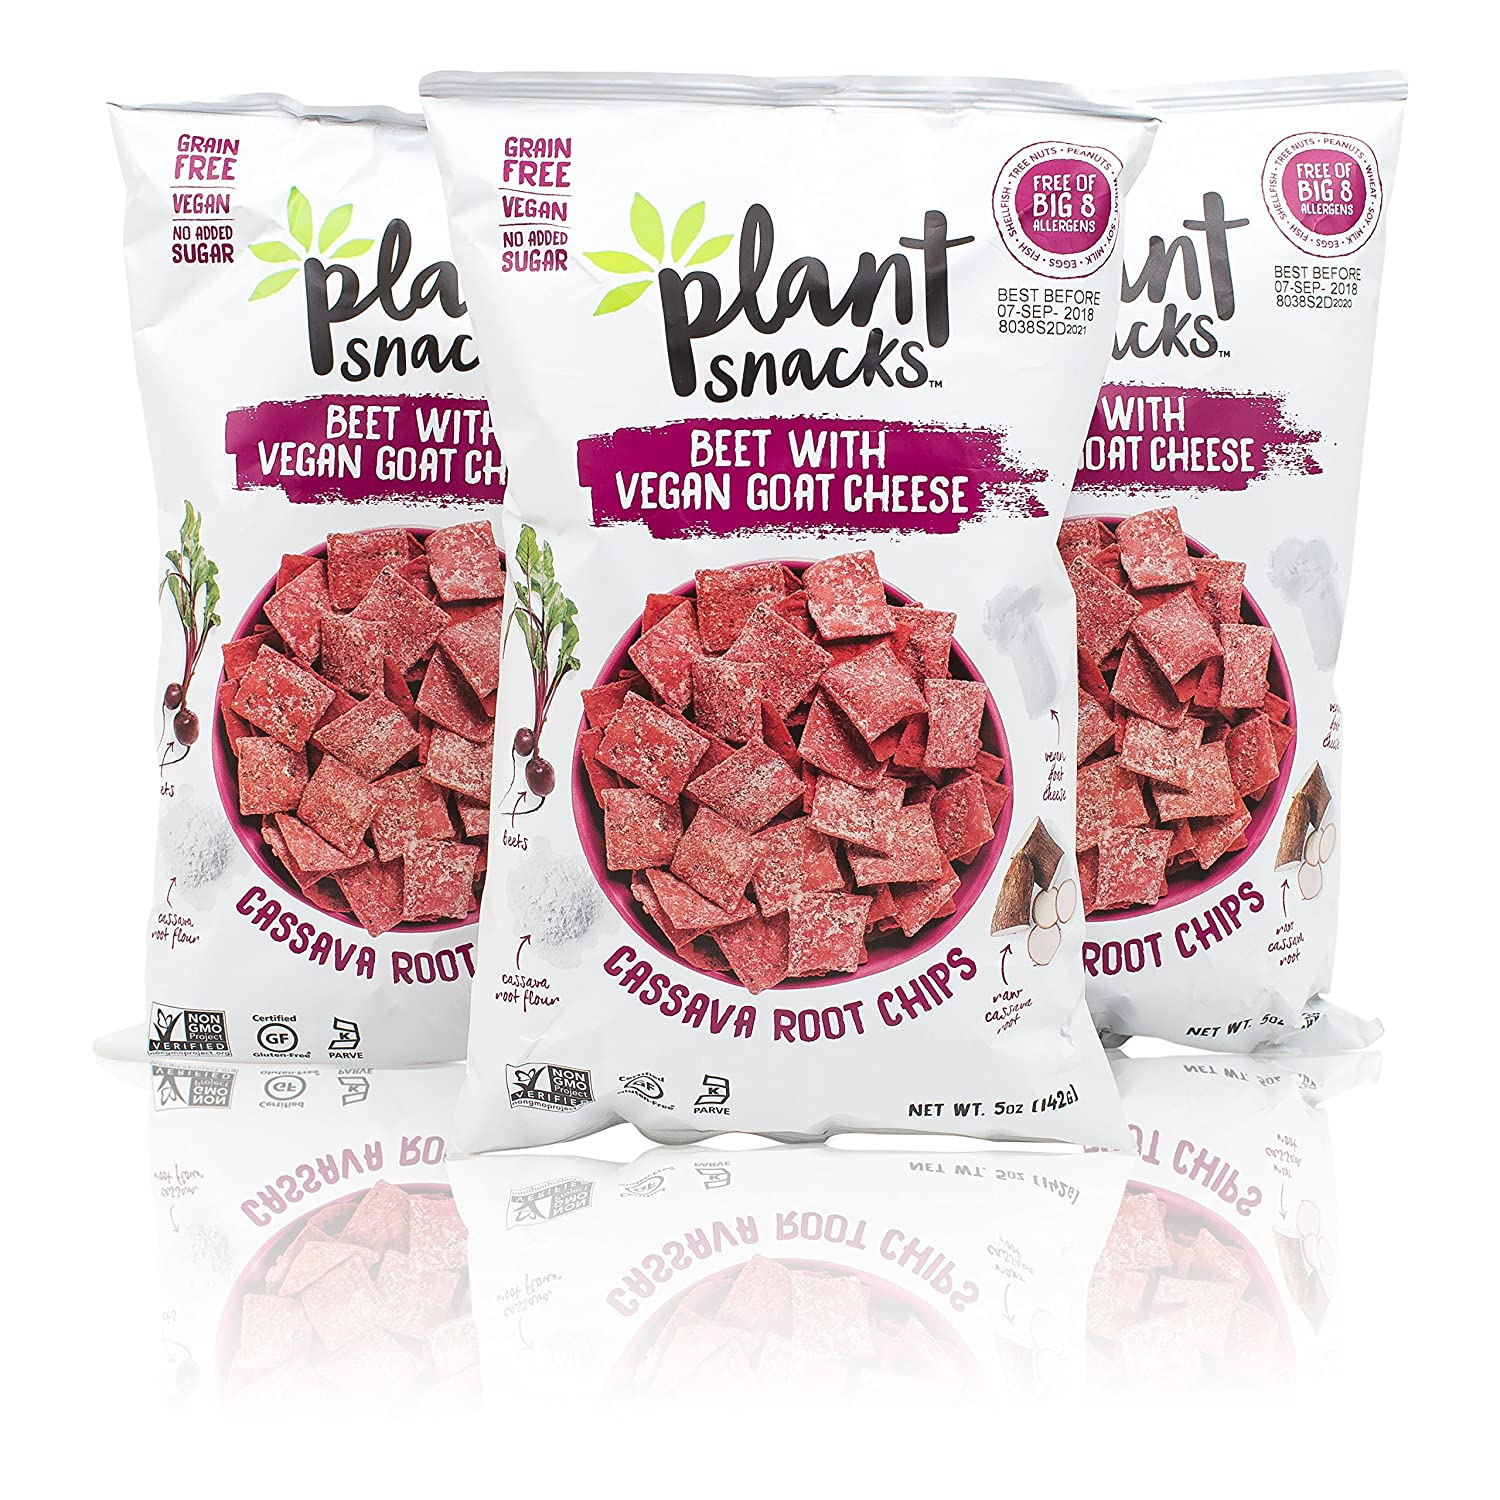 Plant Snacks Beet with VEGAN Goat Cheese Mix Cassava Root Chips, Vegan, Big-8 Allergen Free, Non-GMO Project Verified, Gluten Free, Grain Free, No Added Sugar, 5 oz Bags, Pack of 3